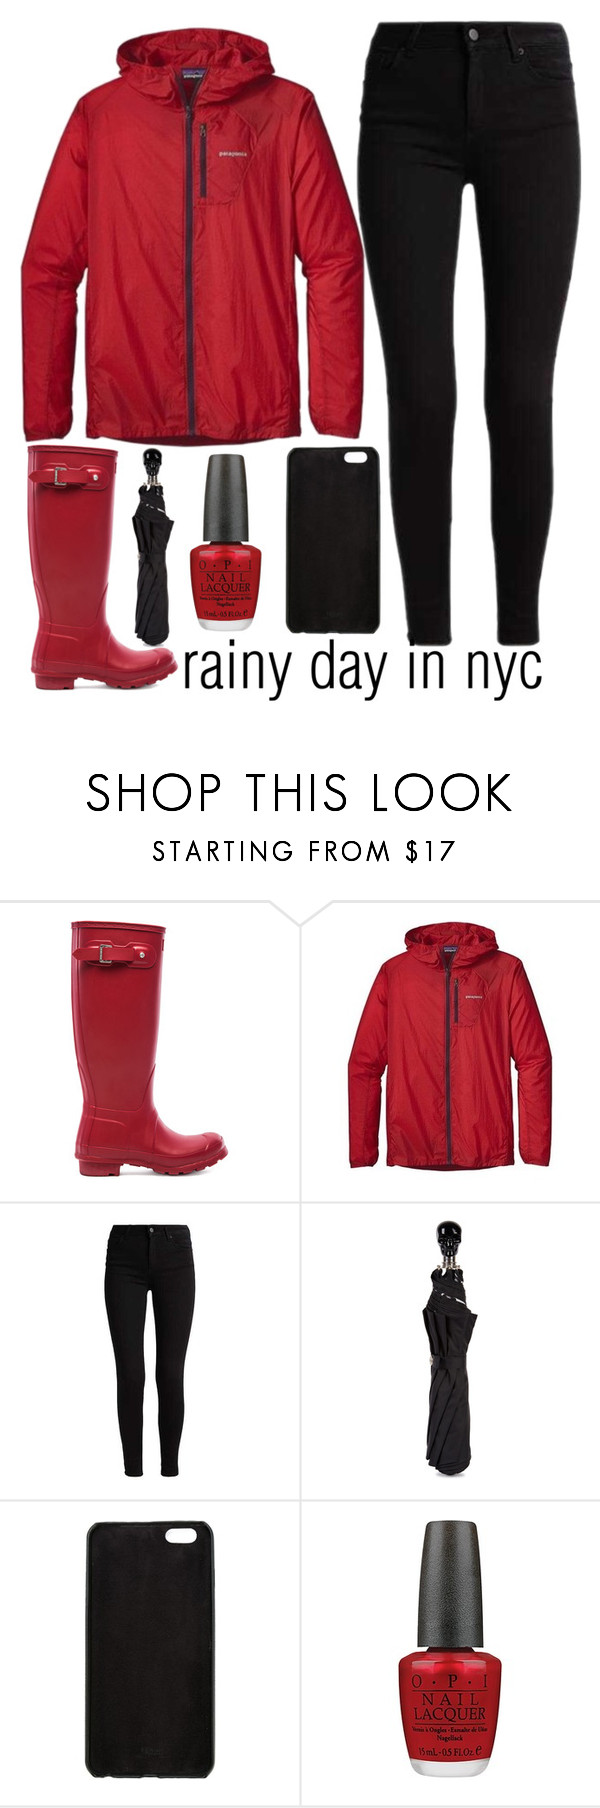 """rainy day in nyc"" by j-n-a ❤ liked on Polyvore featuring Hunter, Patagonia, Alexander McQueen, Fendi, OPI, NYC, rainyday, rain and rainydayfashion"